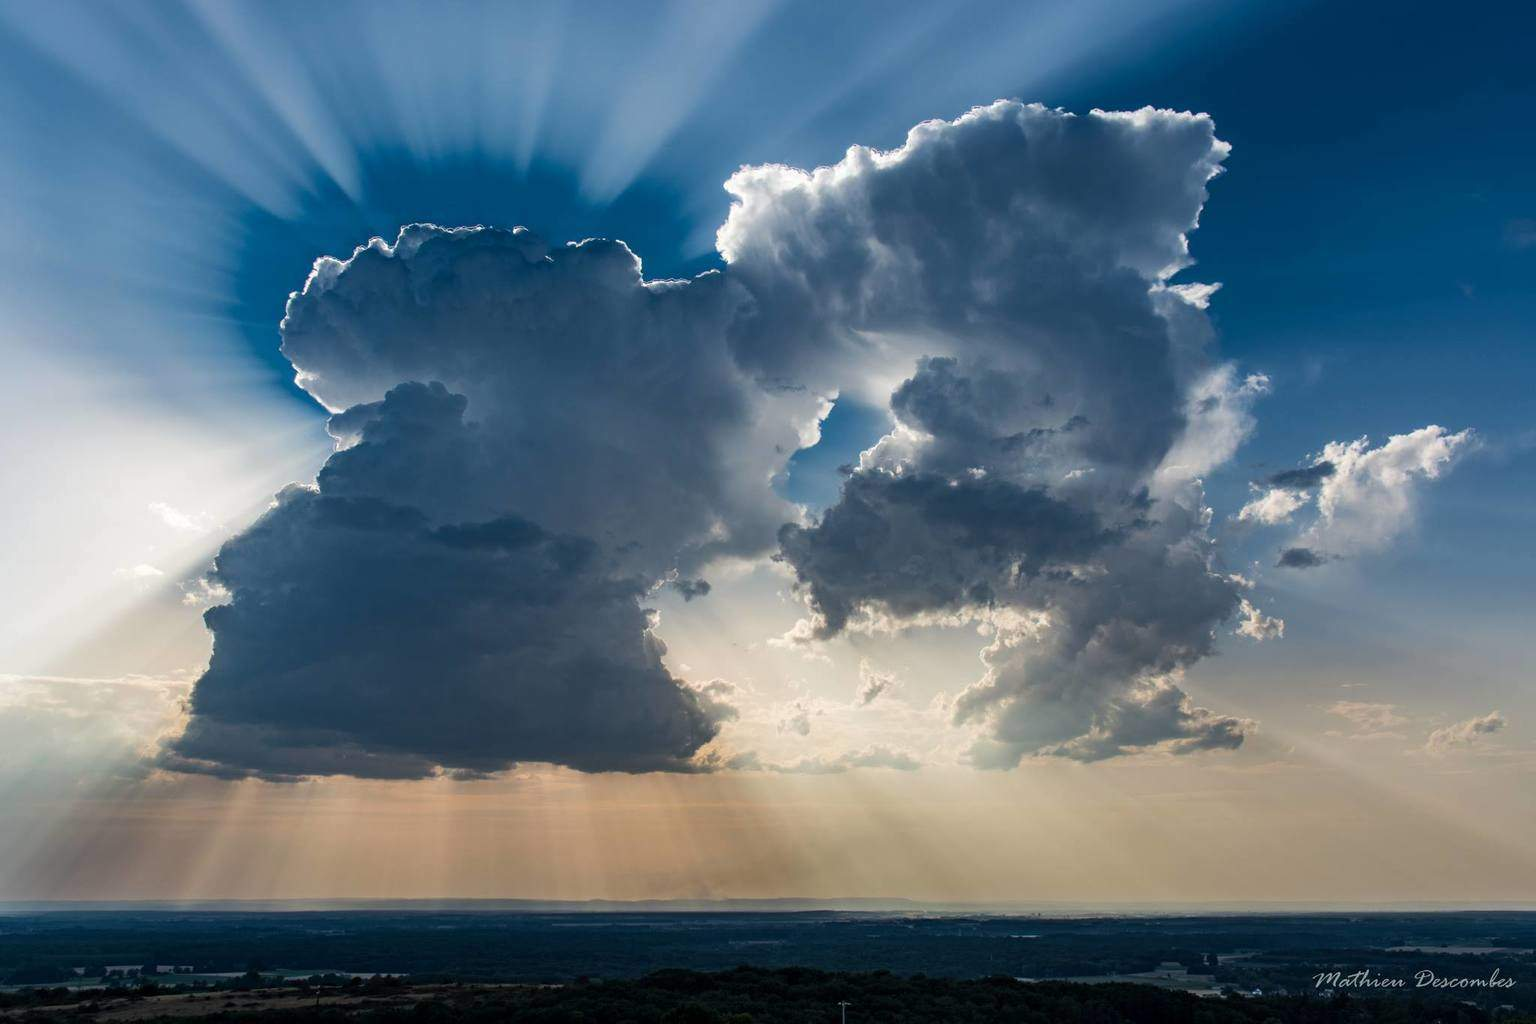 Cell stormy eclipsing the sun, Franche-comté, France